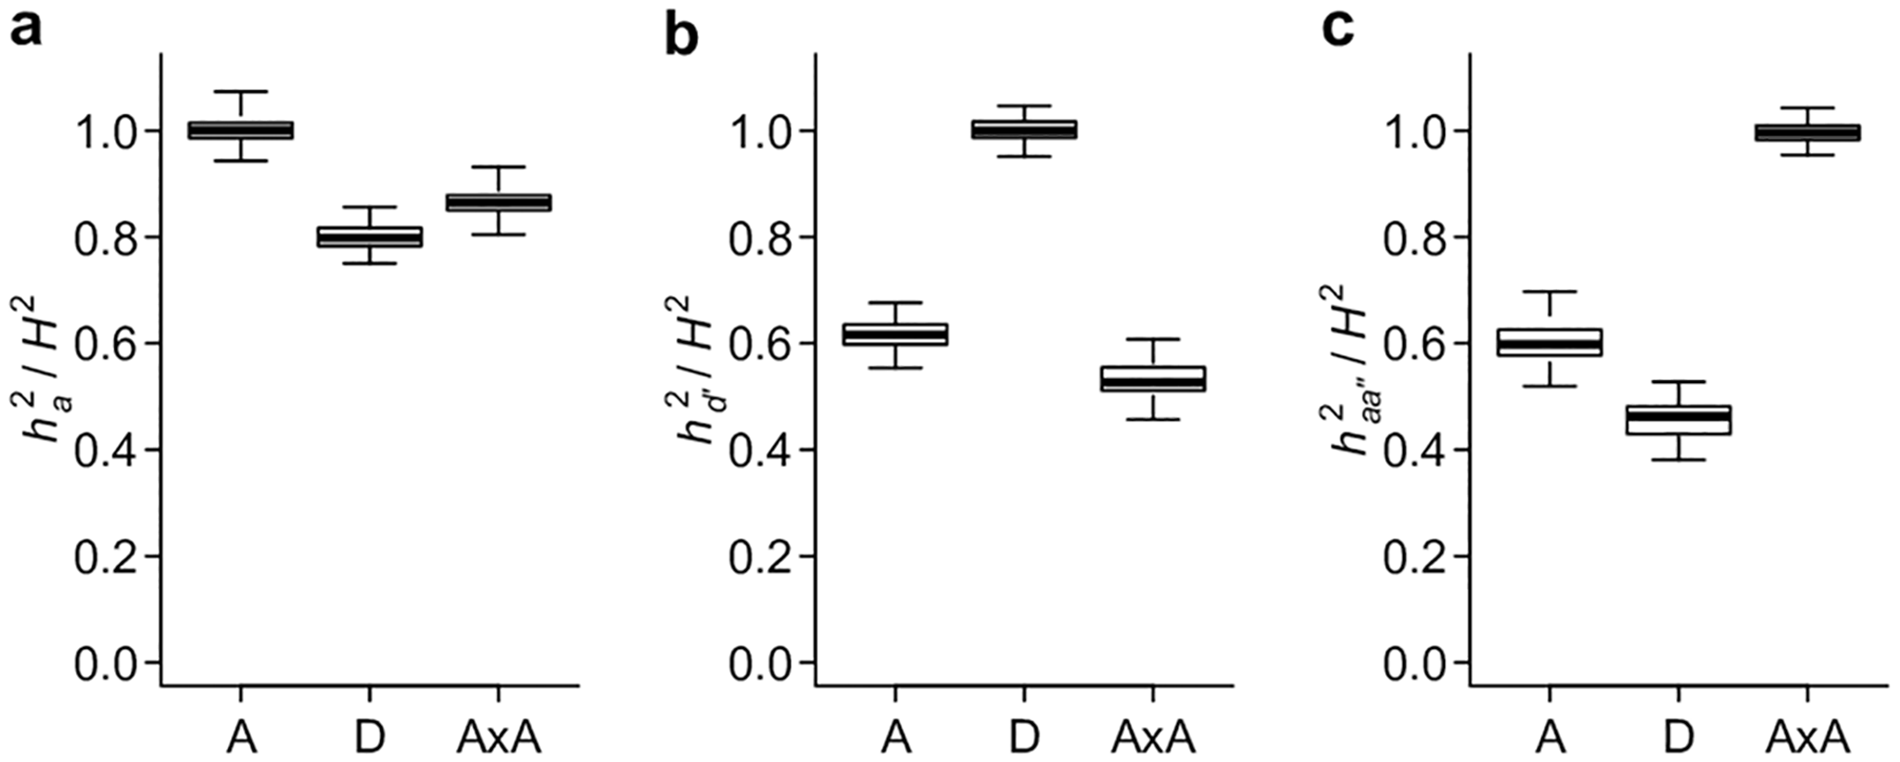 Conventional and alternative parameterizations capture the majority of polygenic genetic variance.